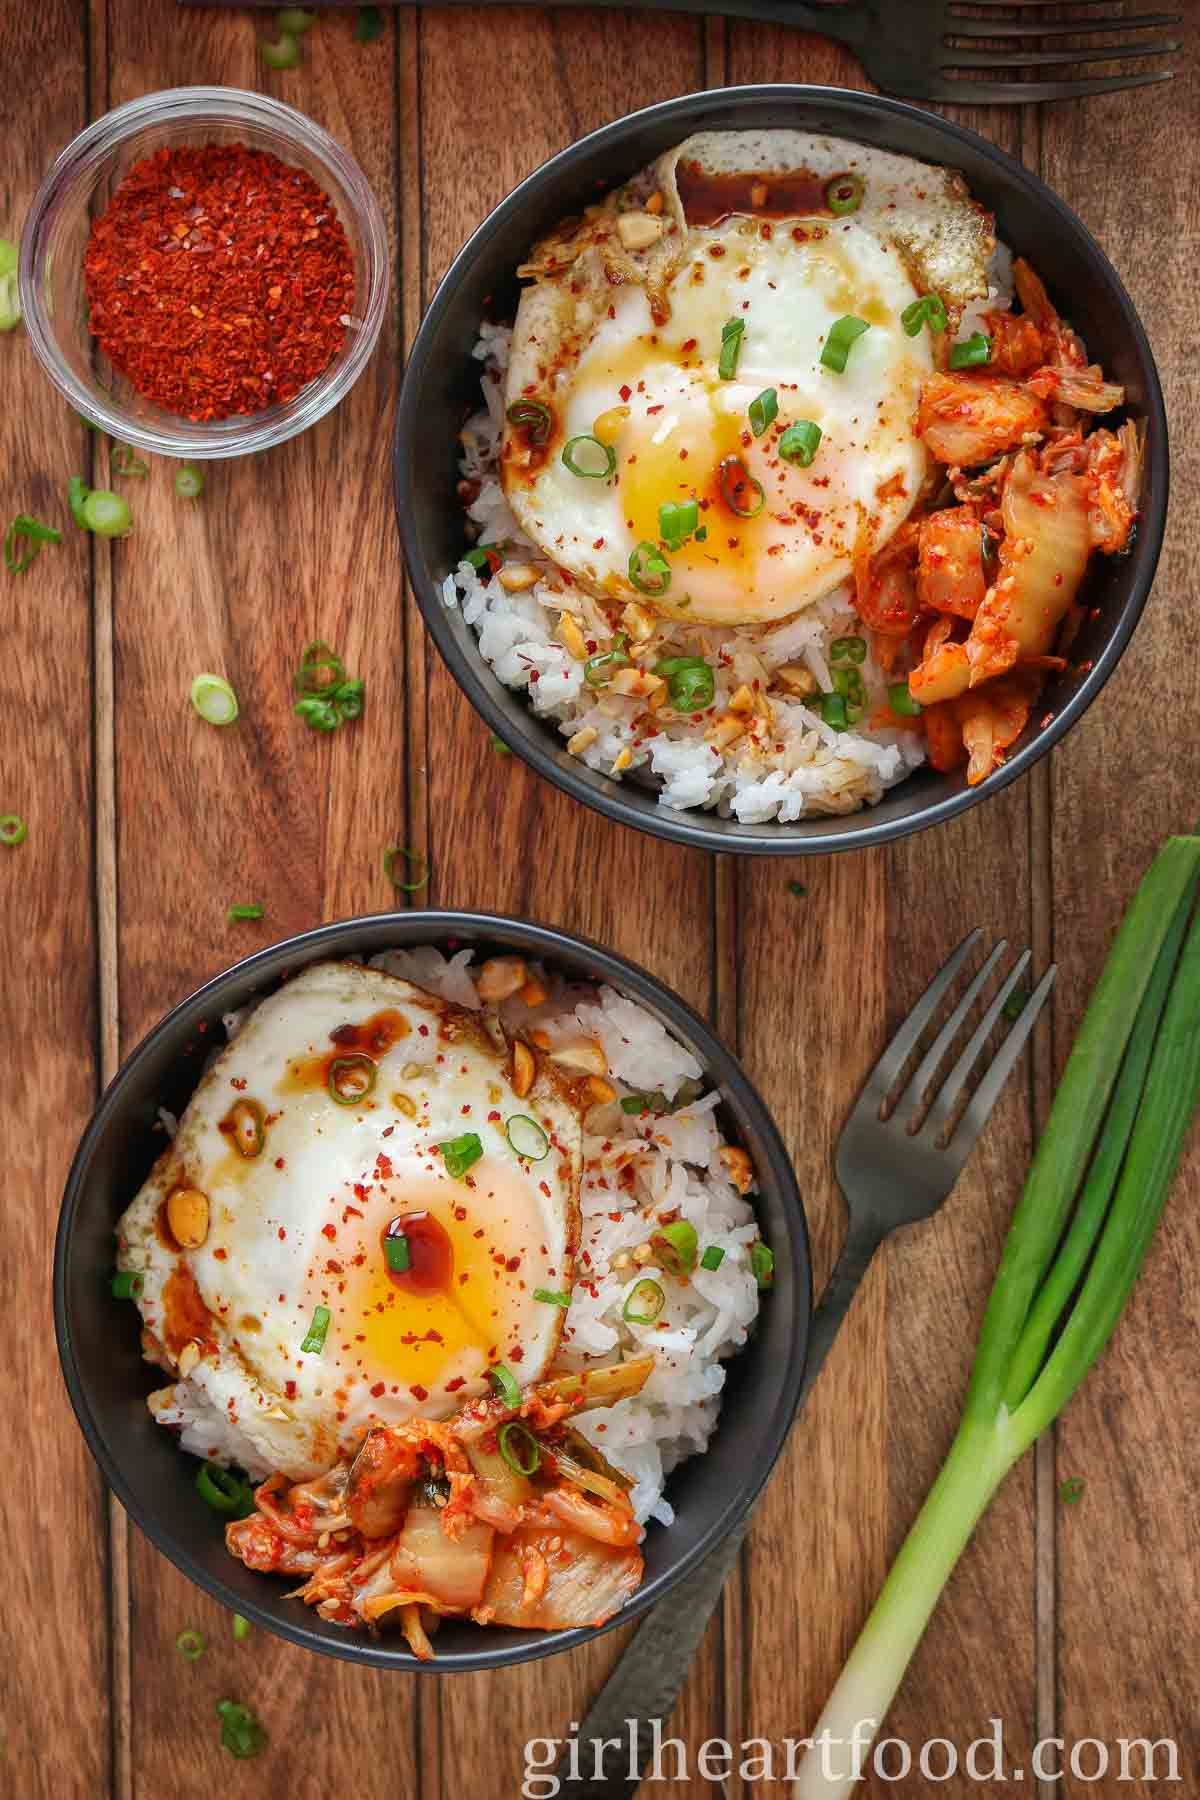 Two fried egg and rice bowls alongside green onion and a small dish of red chili pepper flakes.